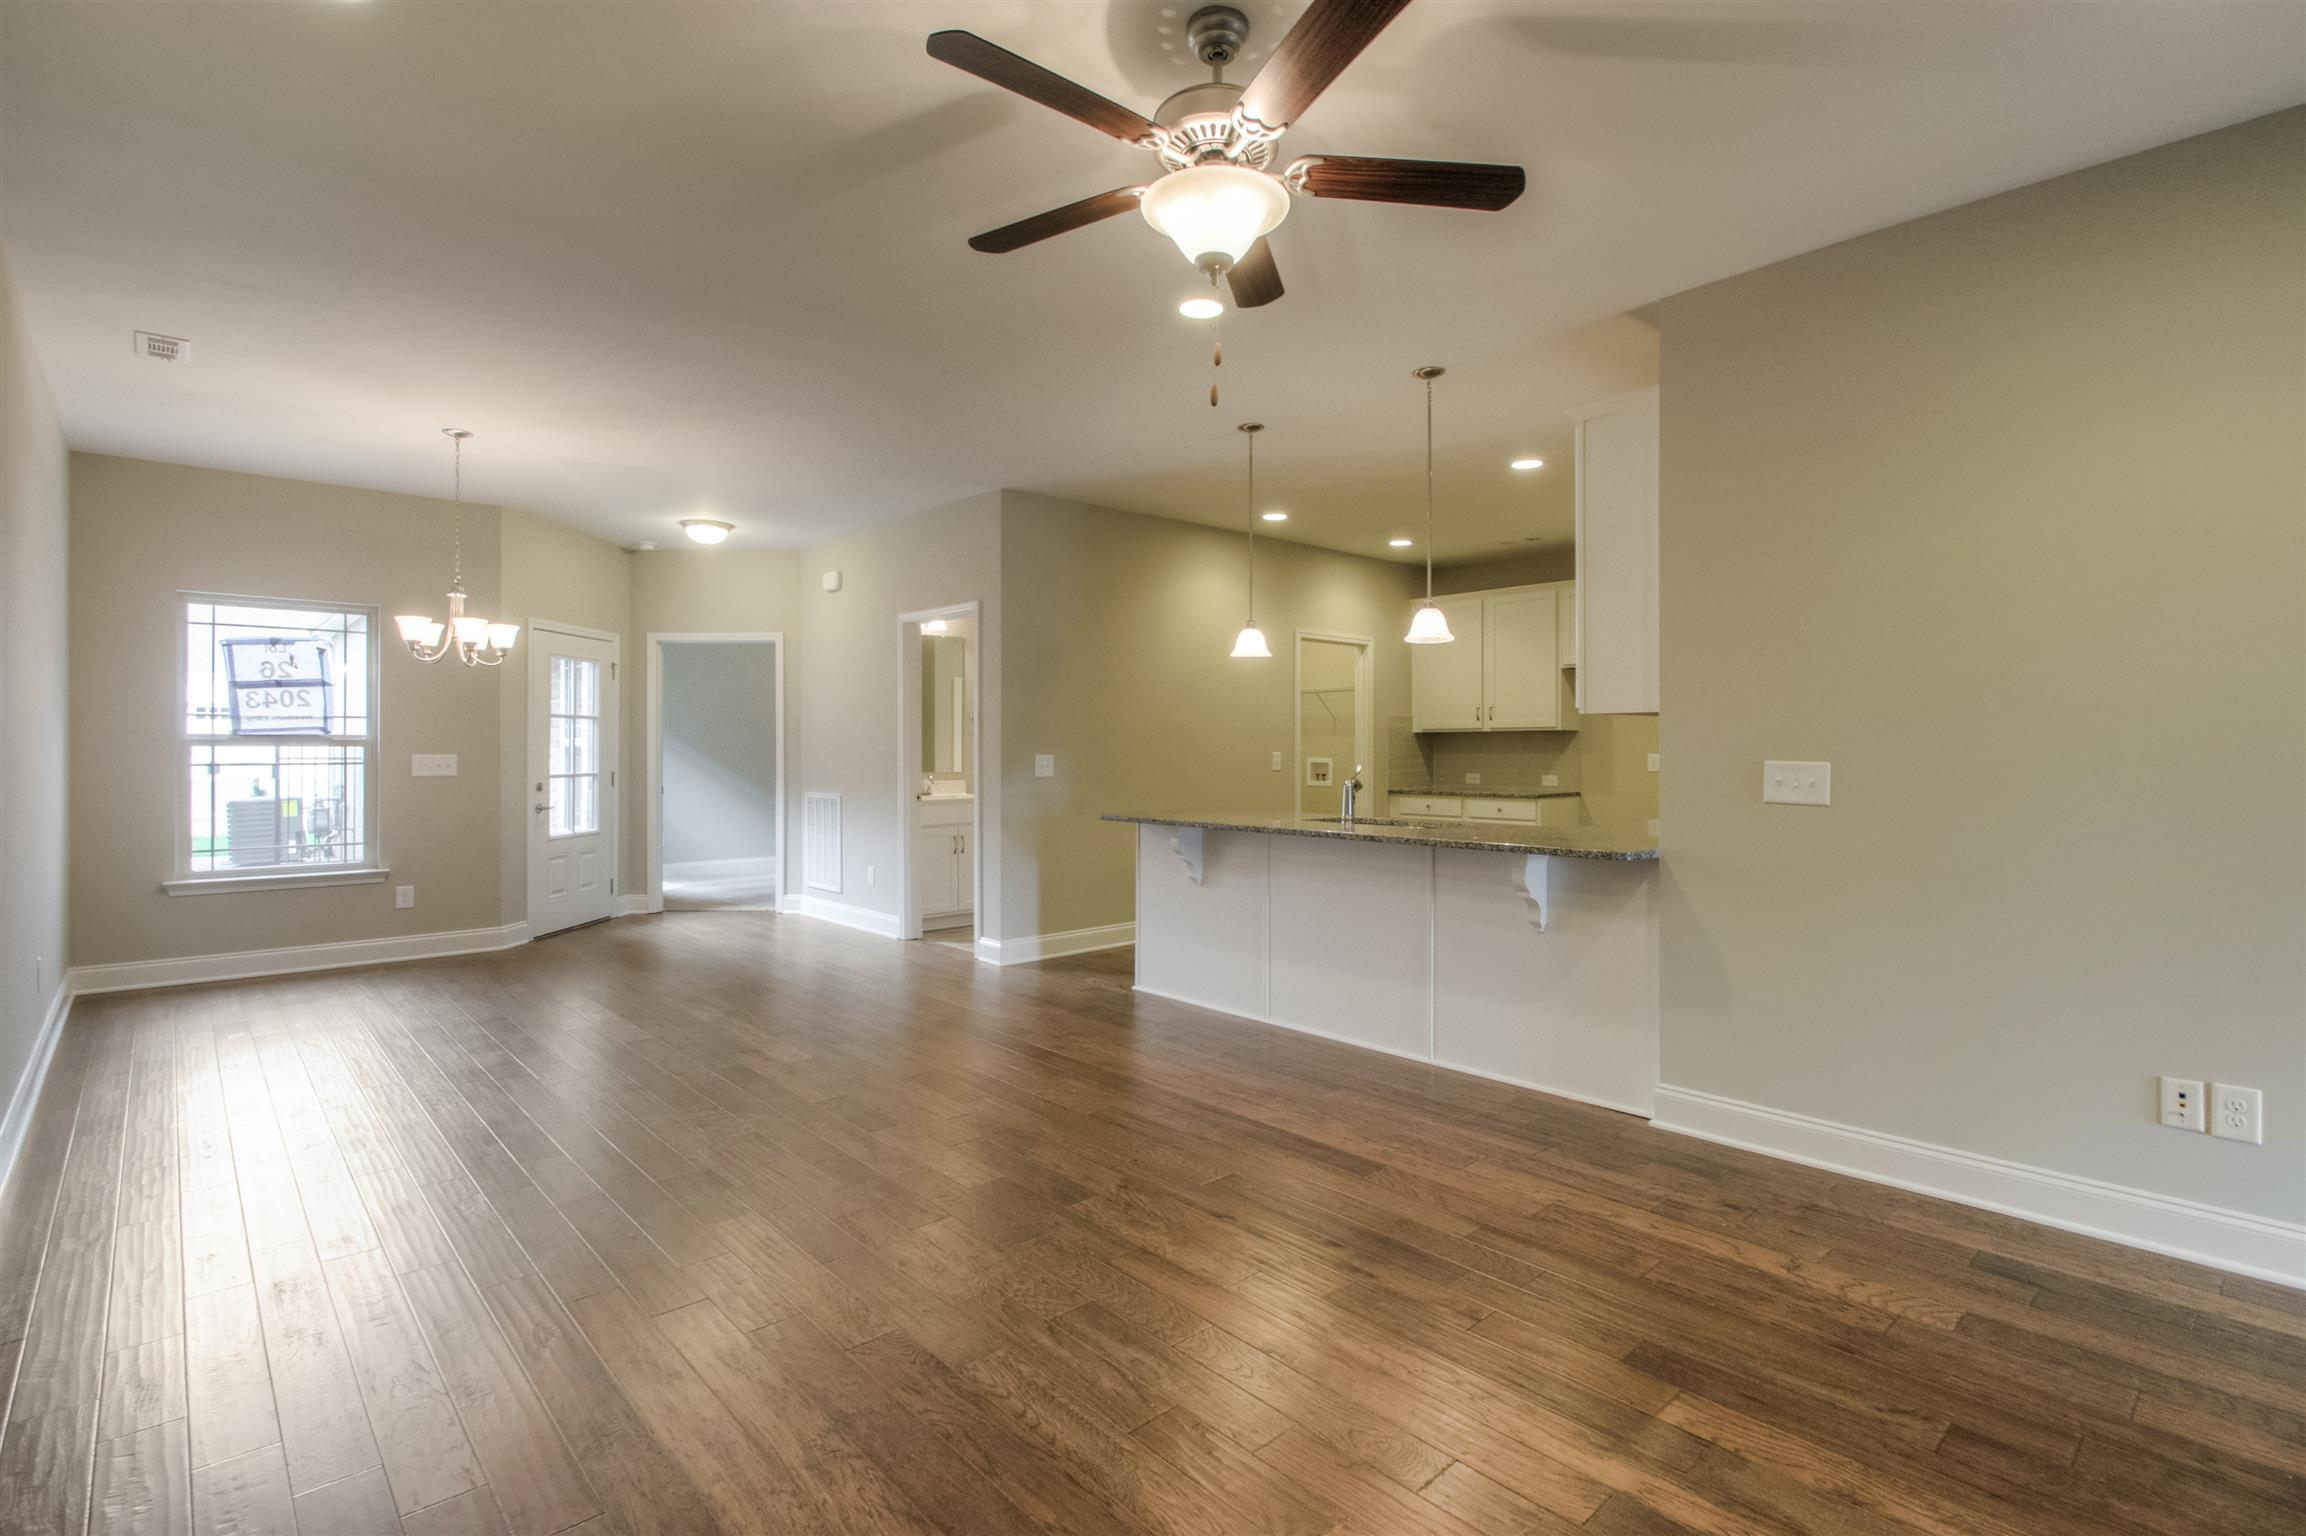 408 Lively Way #64, Nolensville, Tennessee